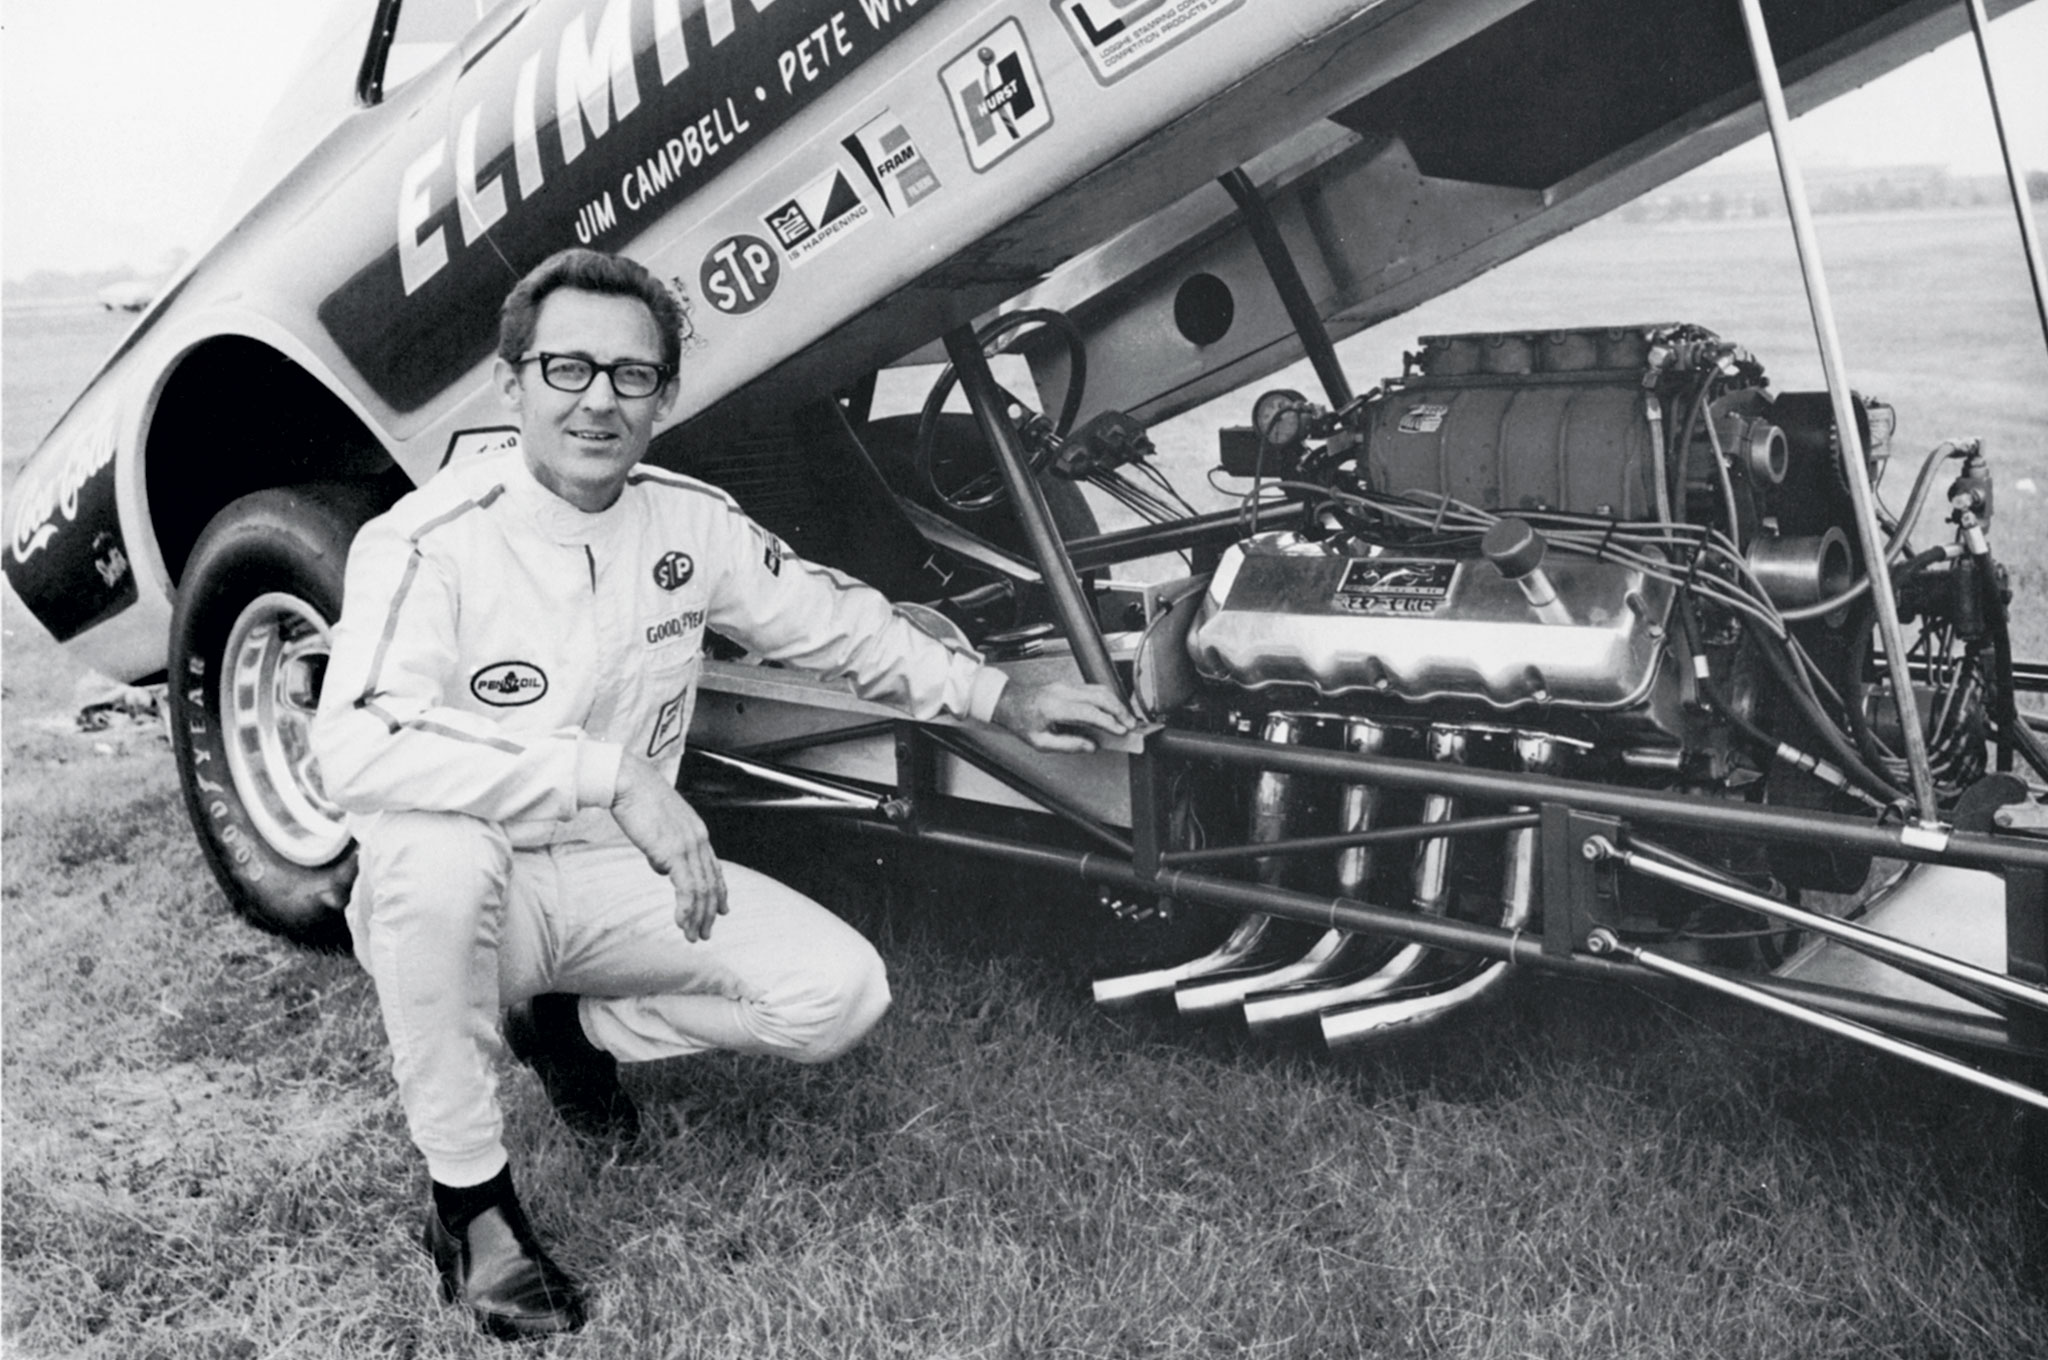 Another famous Nicholson car was his 1968 Mercury Eliminator Cougar. This was the last blown, nitro Funny Car he drove before returning to heads-up Super Stockers and the Modified Production Maverick the following year.